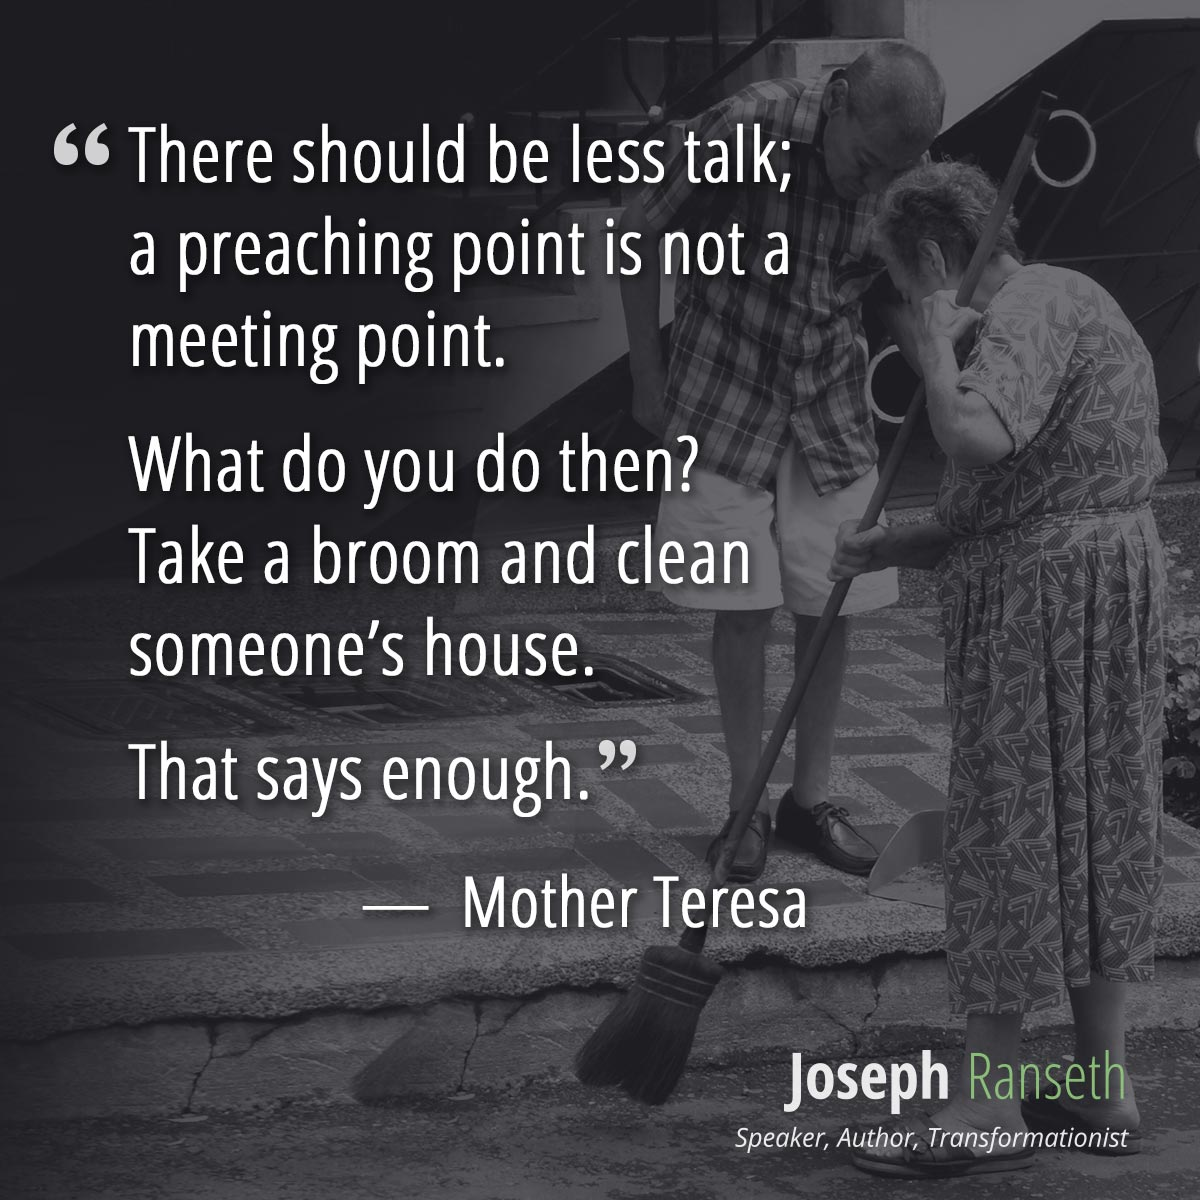 There should be less talk; a preaching point is not a meeting point. What do you do then? Take a broom and clean someone's house. That says enough.